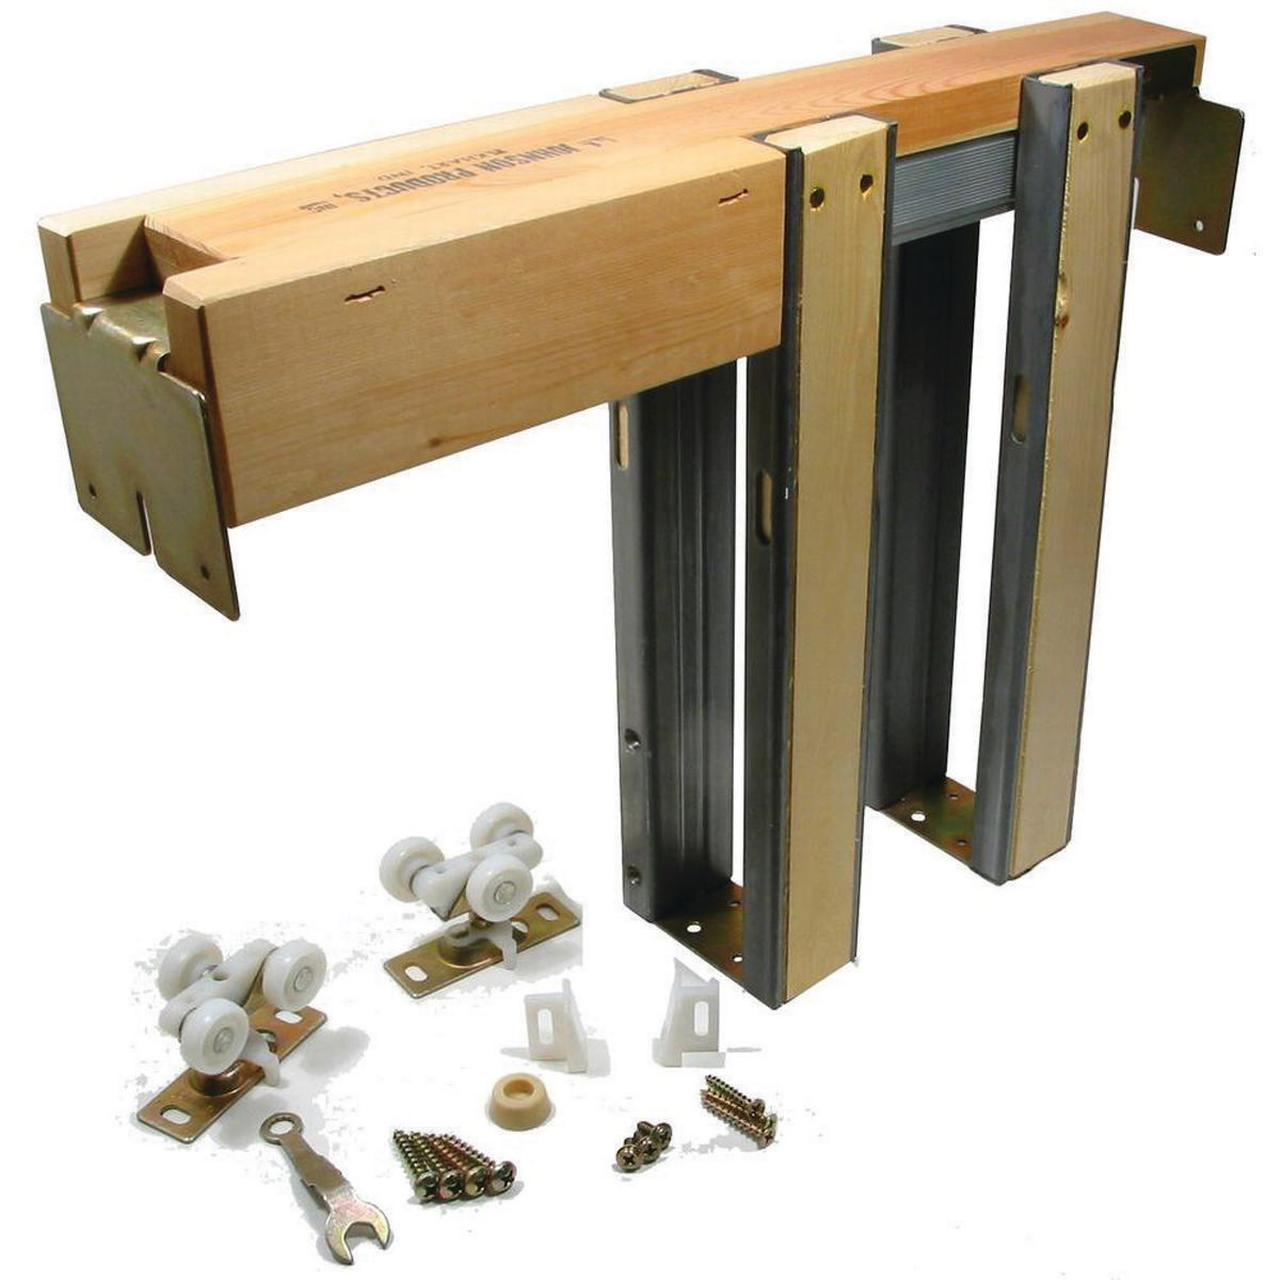 Johnson Hardware 1500 Commercial Grade Pocket Door Frame Kit, For Use With 200 lb Weighing Door